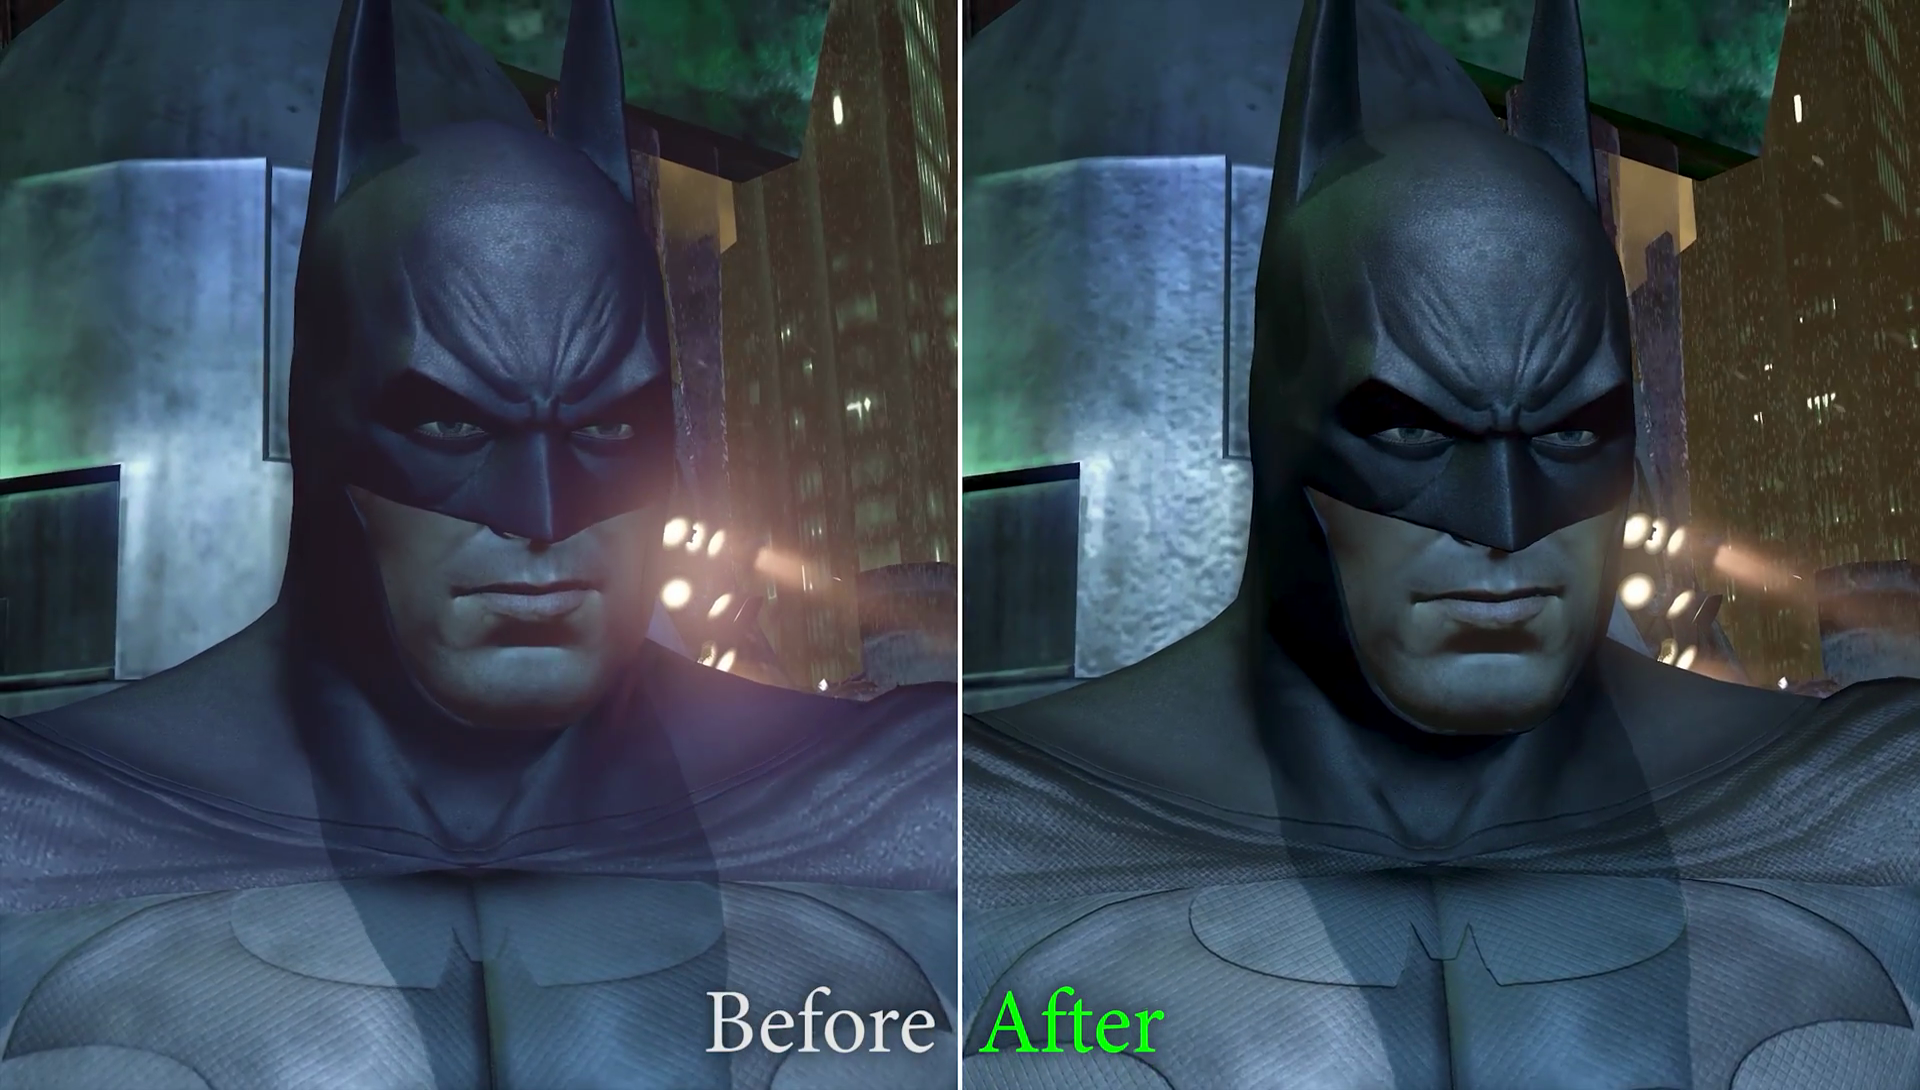 New Mod Adds HD Textures to Batman: Arkham City, Here's How